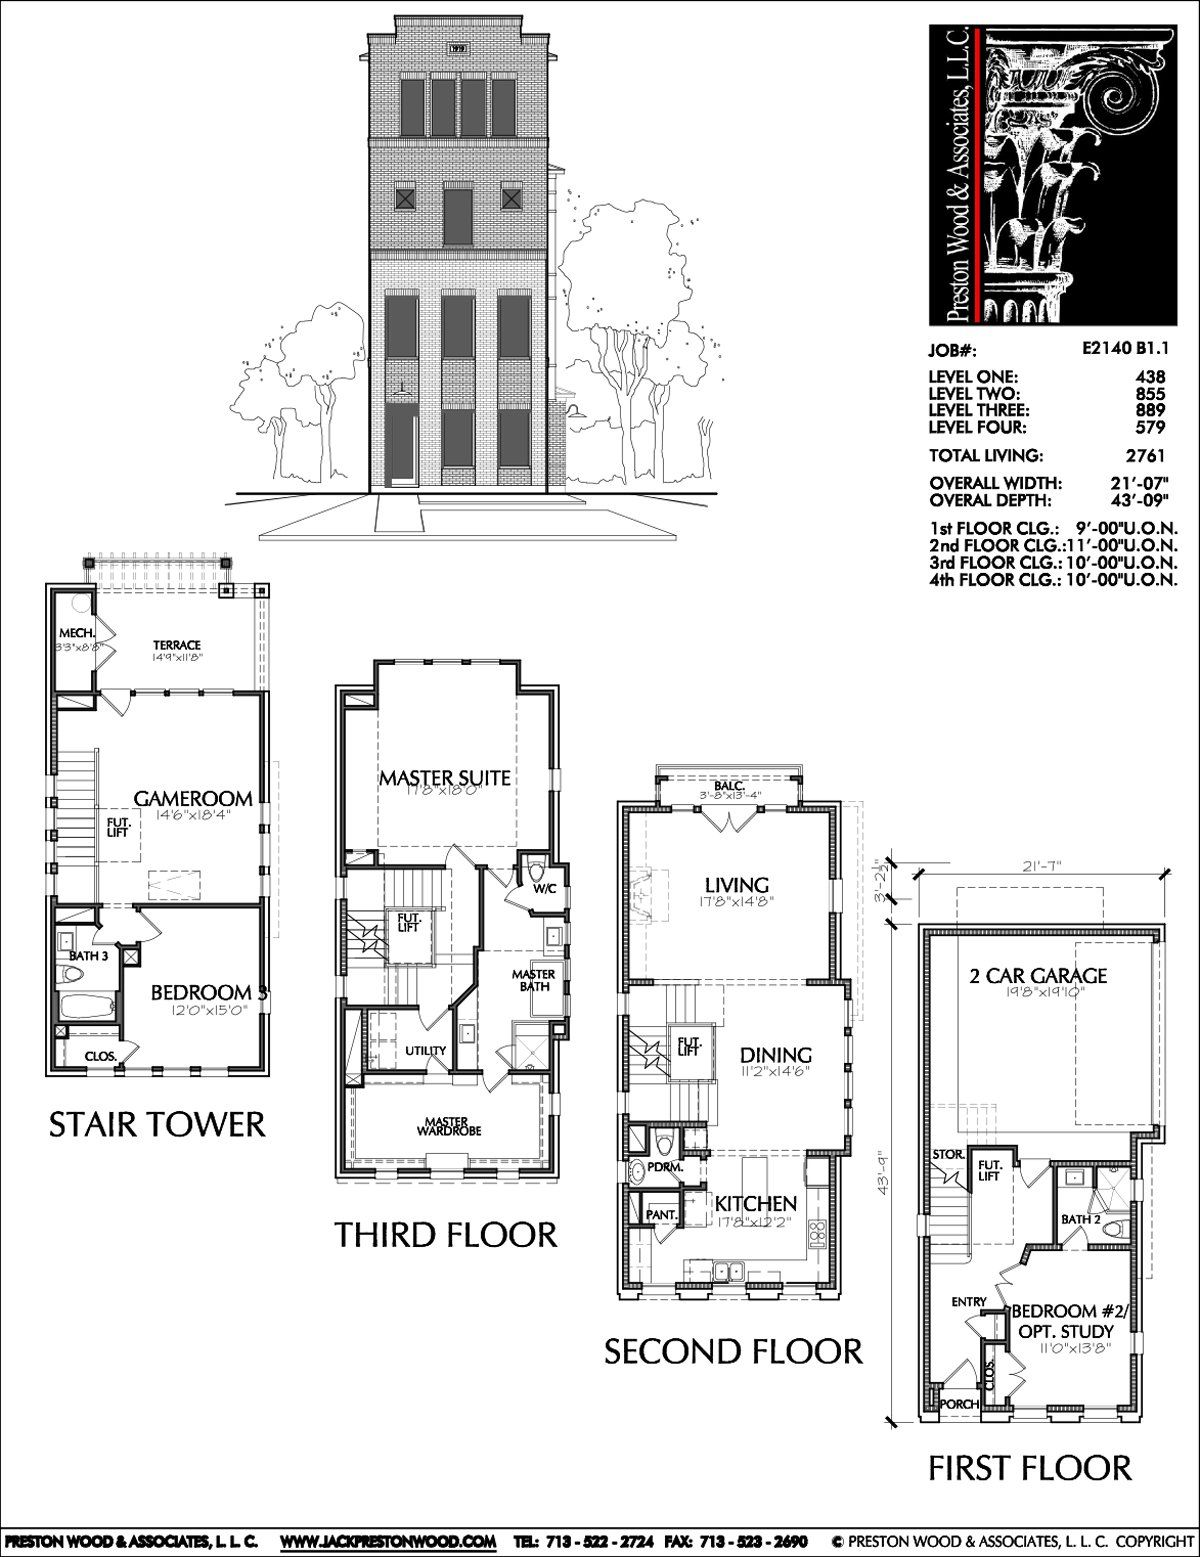 Four Story Townhouse Plan E2140 B1 1 Floor Plans House Plans House Floor Plans